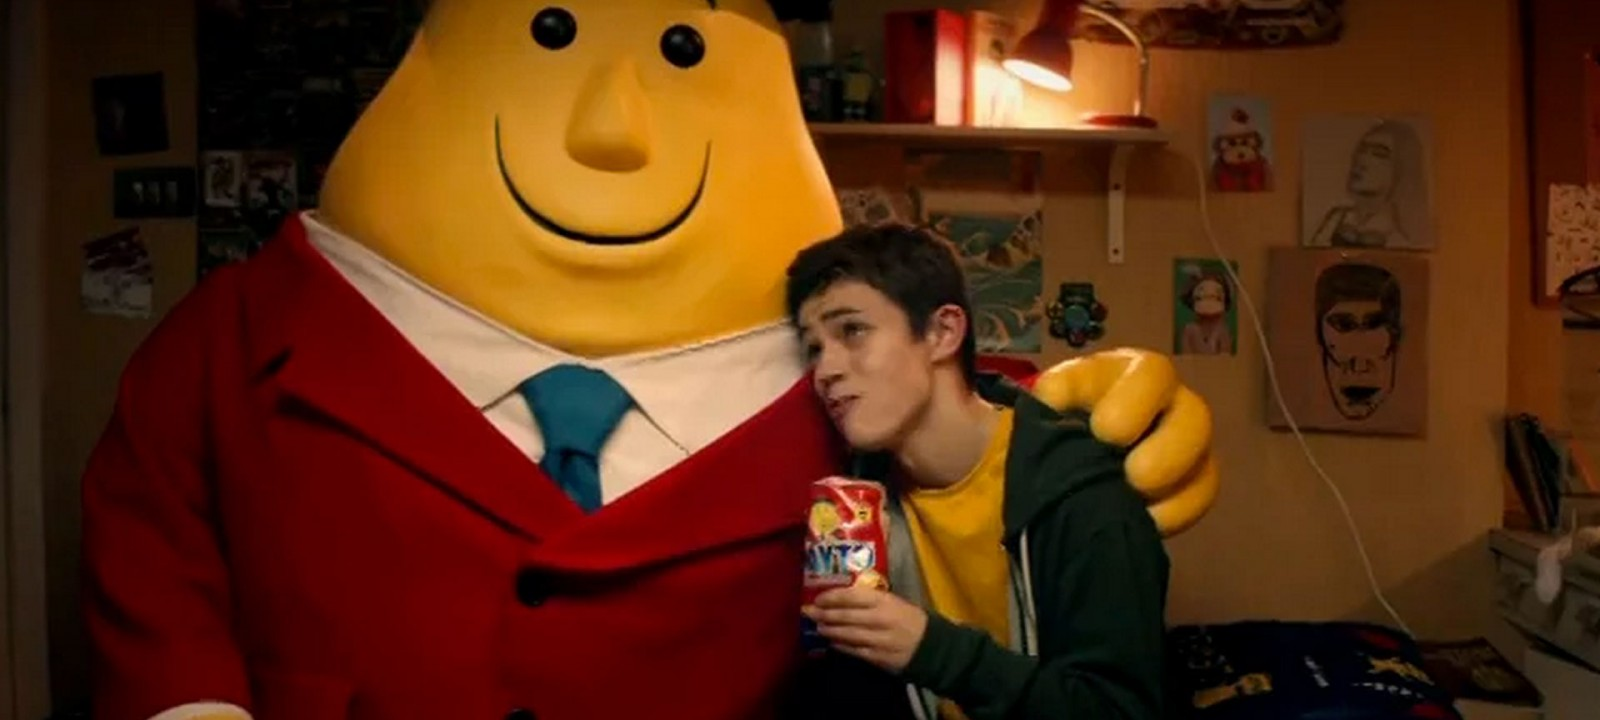 Tayto - More Than Just a Crisp